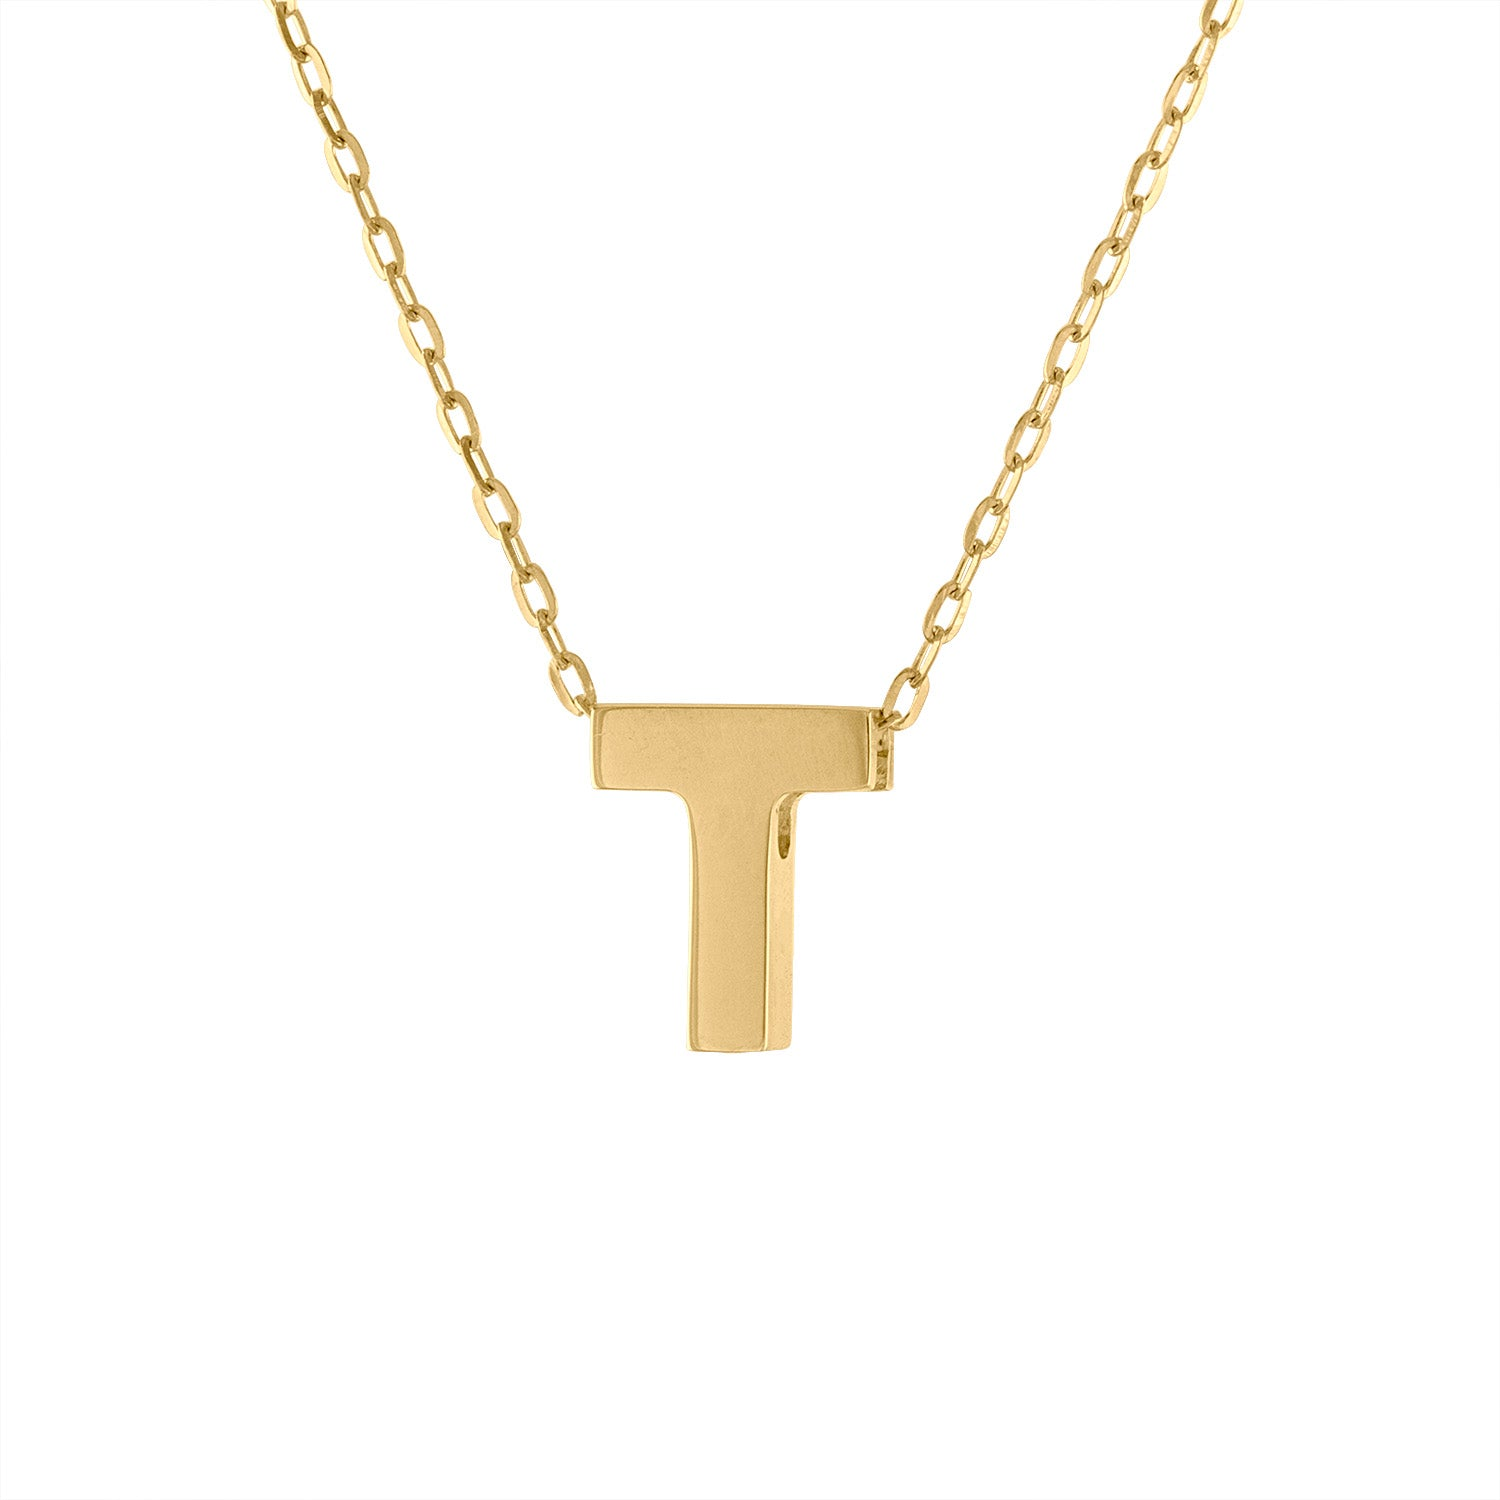 14k Yellow Gold plain initial T necklace